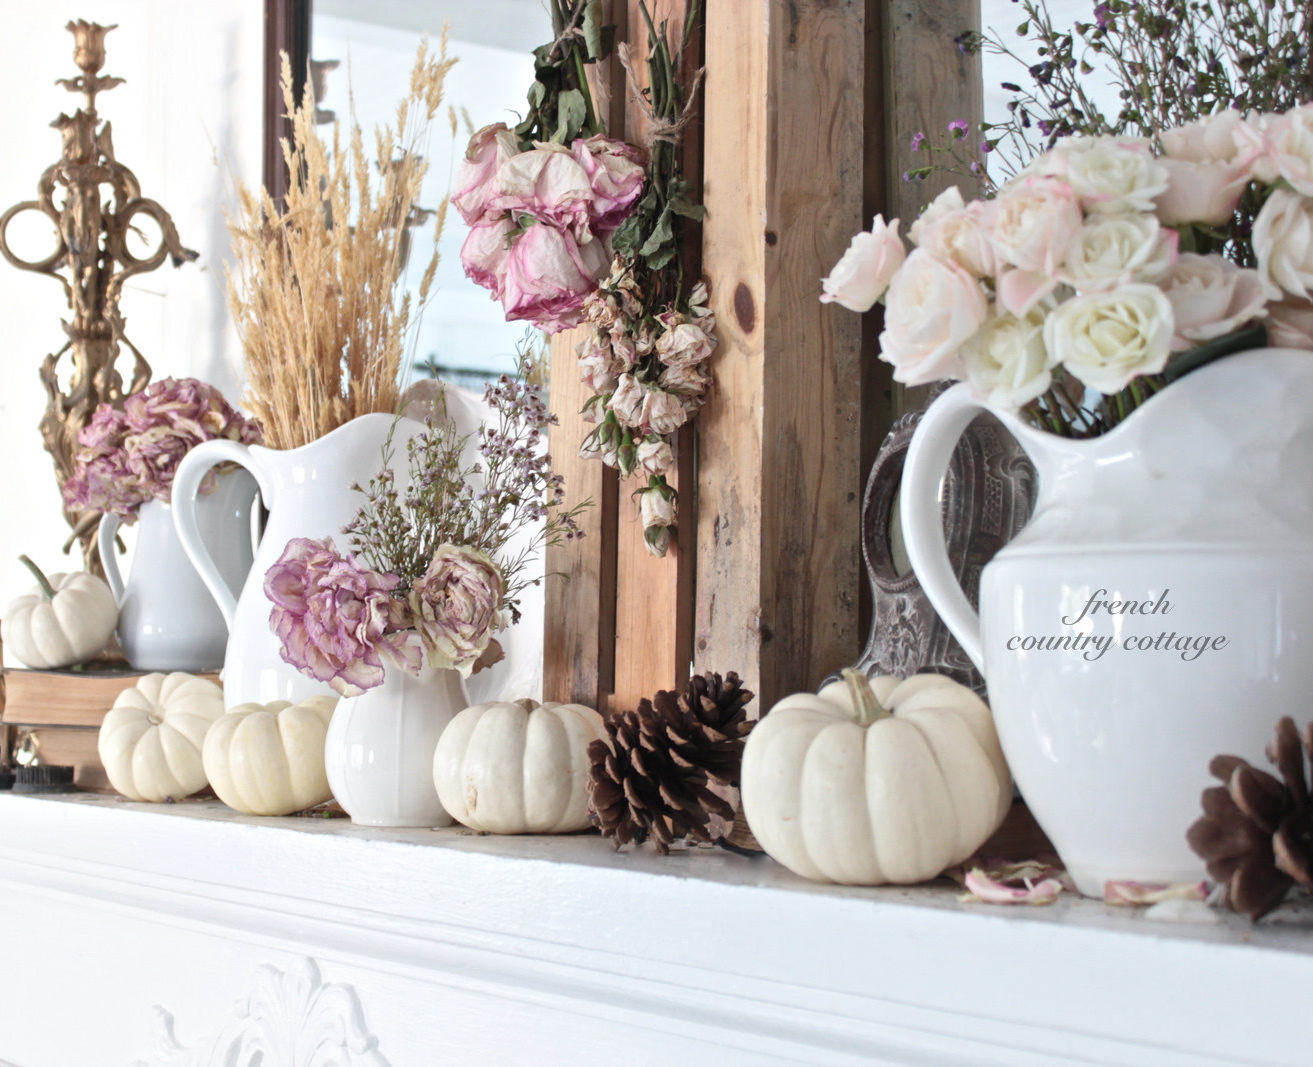 How To Decorate French Country: Decorating With Dried Flowers